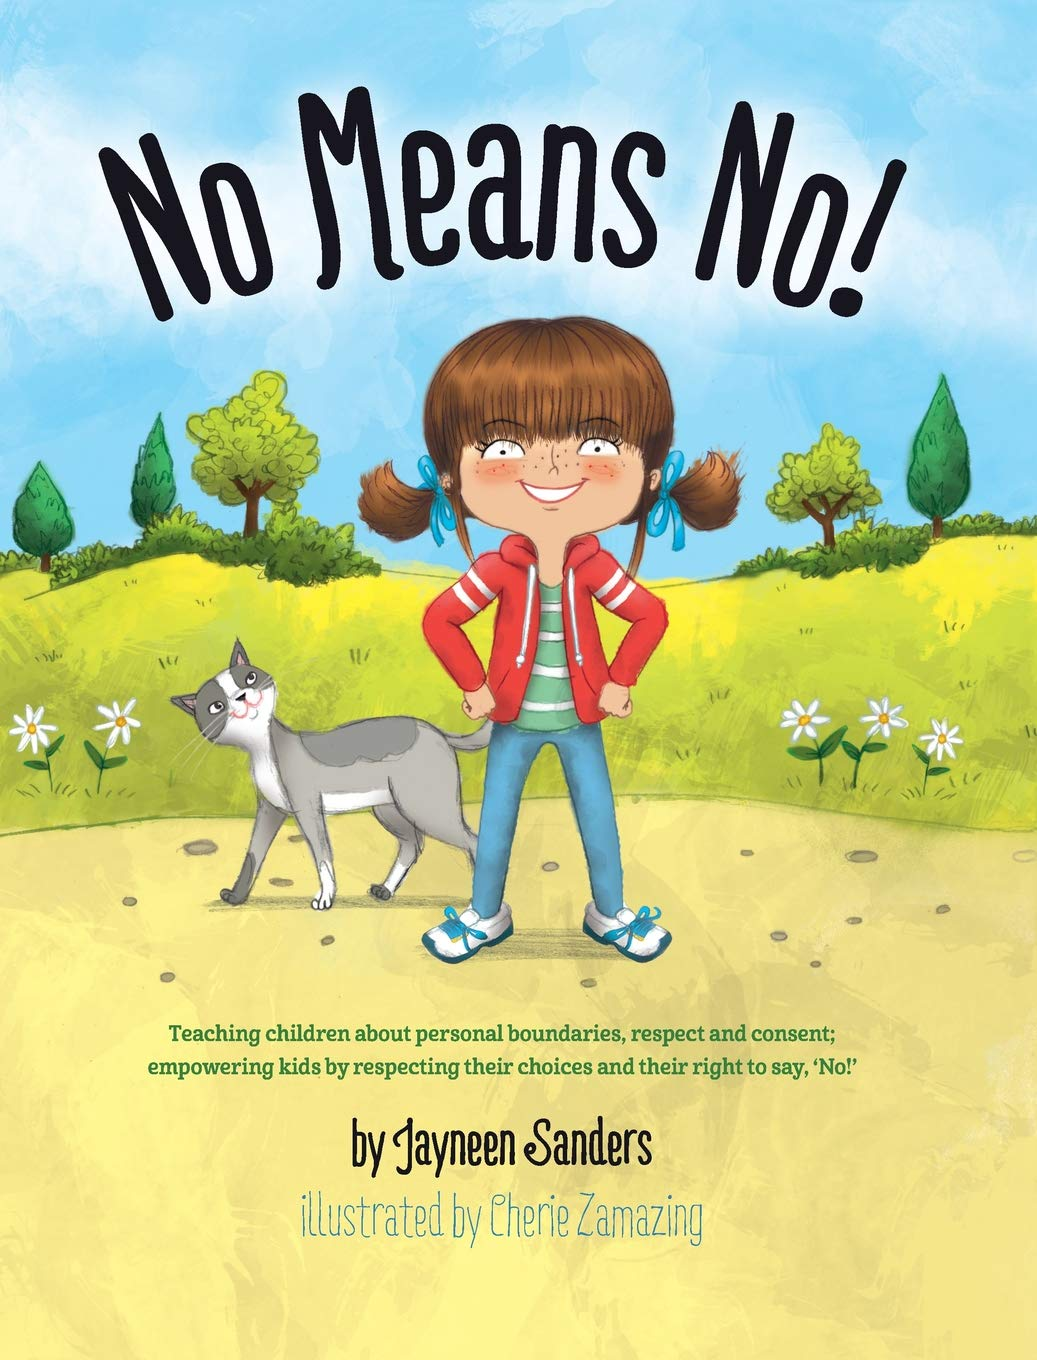 No Means No!: Teaching Personal Boundaries Consent; Empowering Children by Respecting Their Choices and Right to Say 'No!'